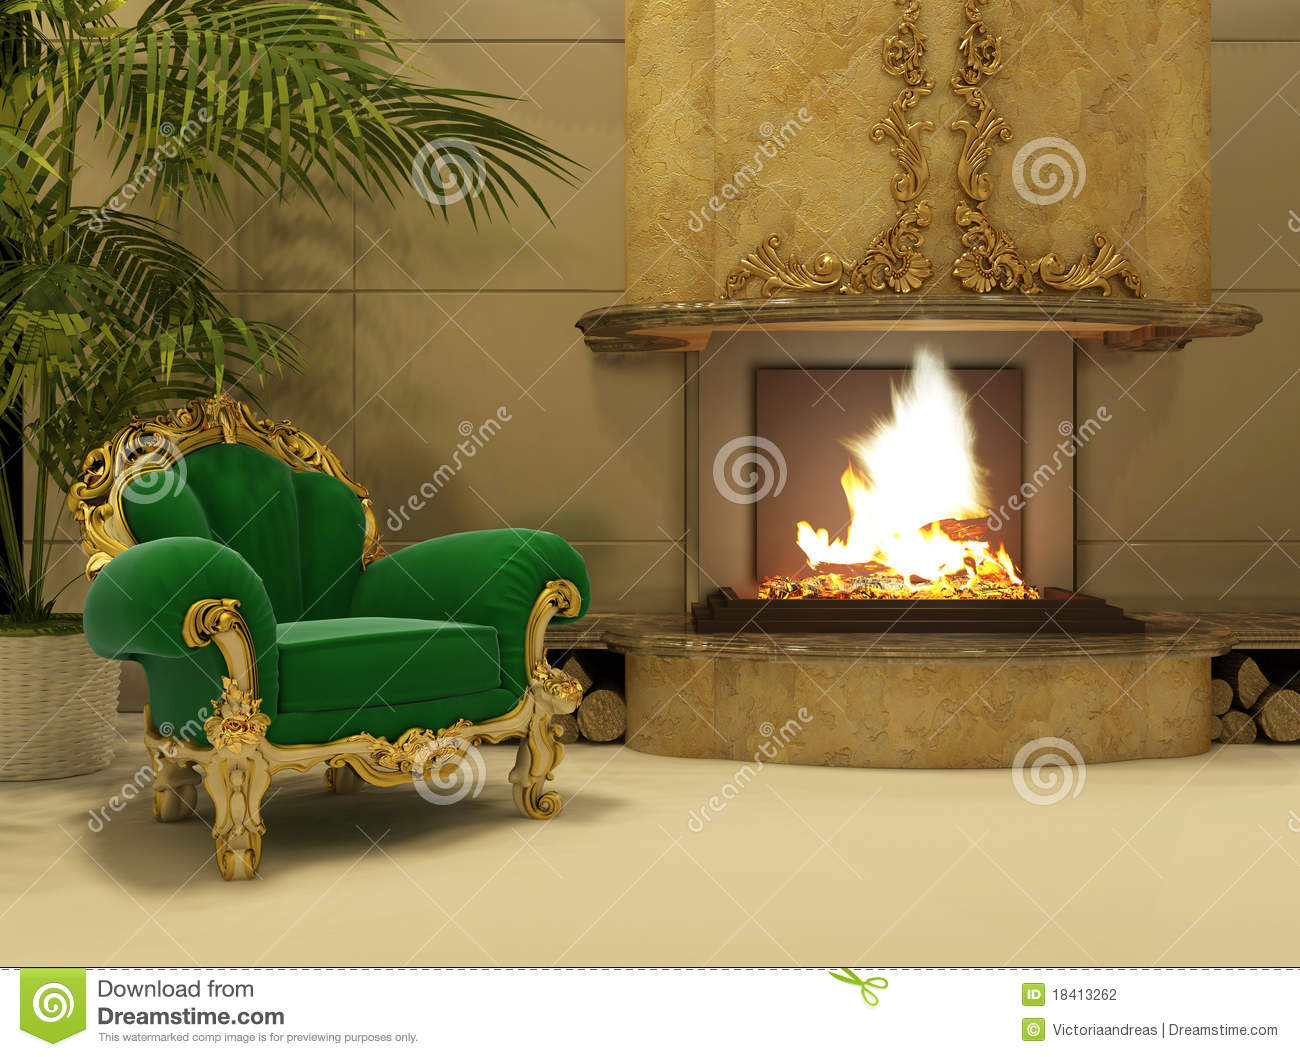 royal armchair by fireplace in luxury interior stock illustration